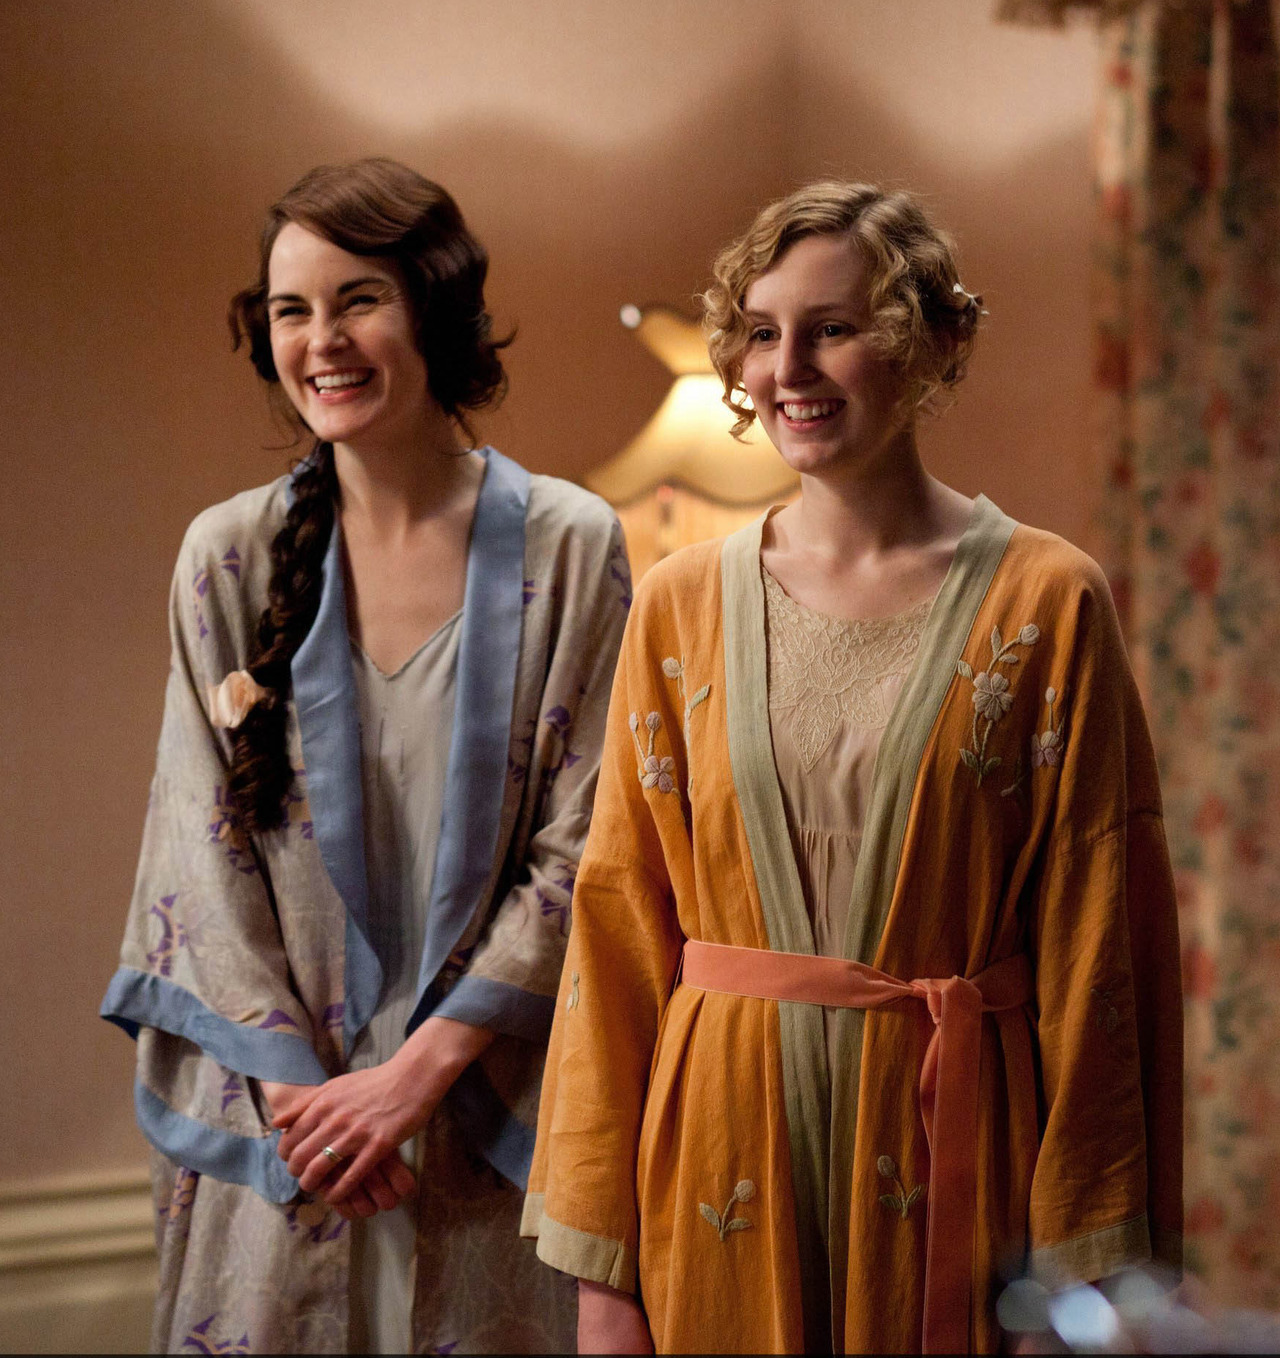 Michelle Dockery and Laura Carmichael on the set of Downton Abbey